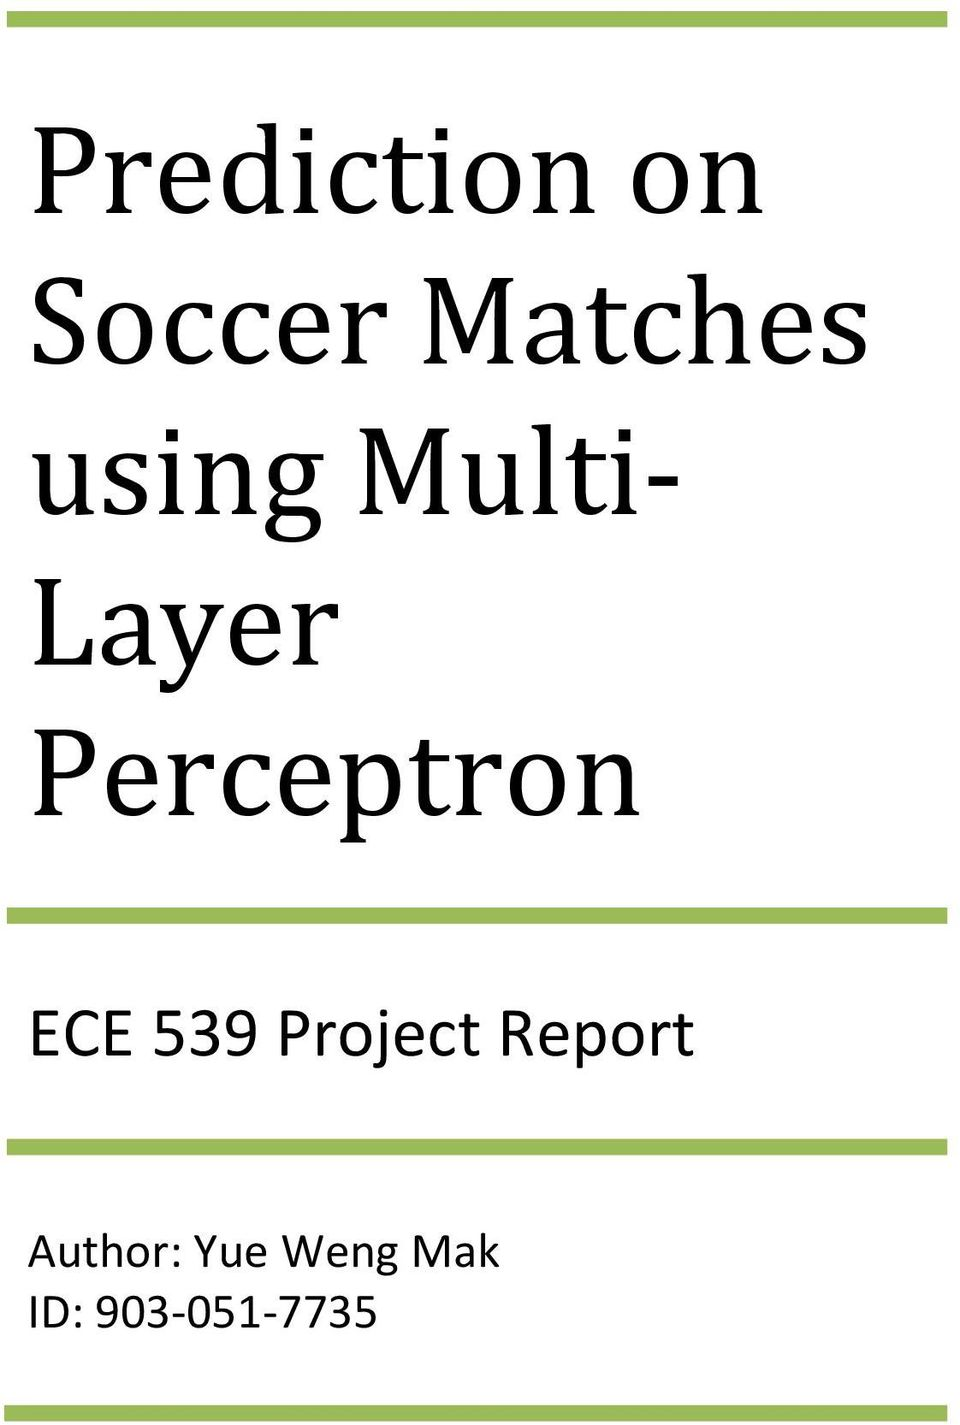 ECE 539 Project Report